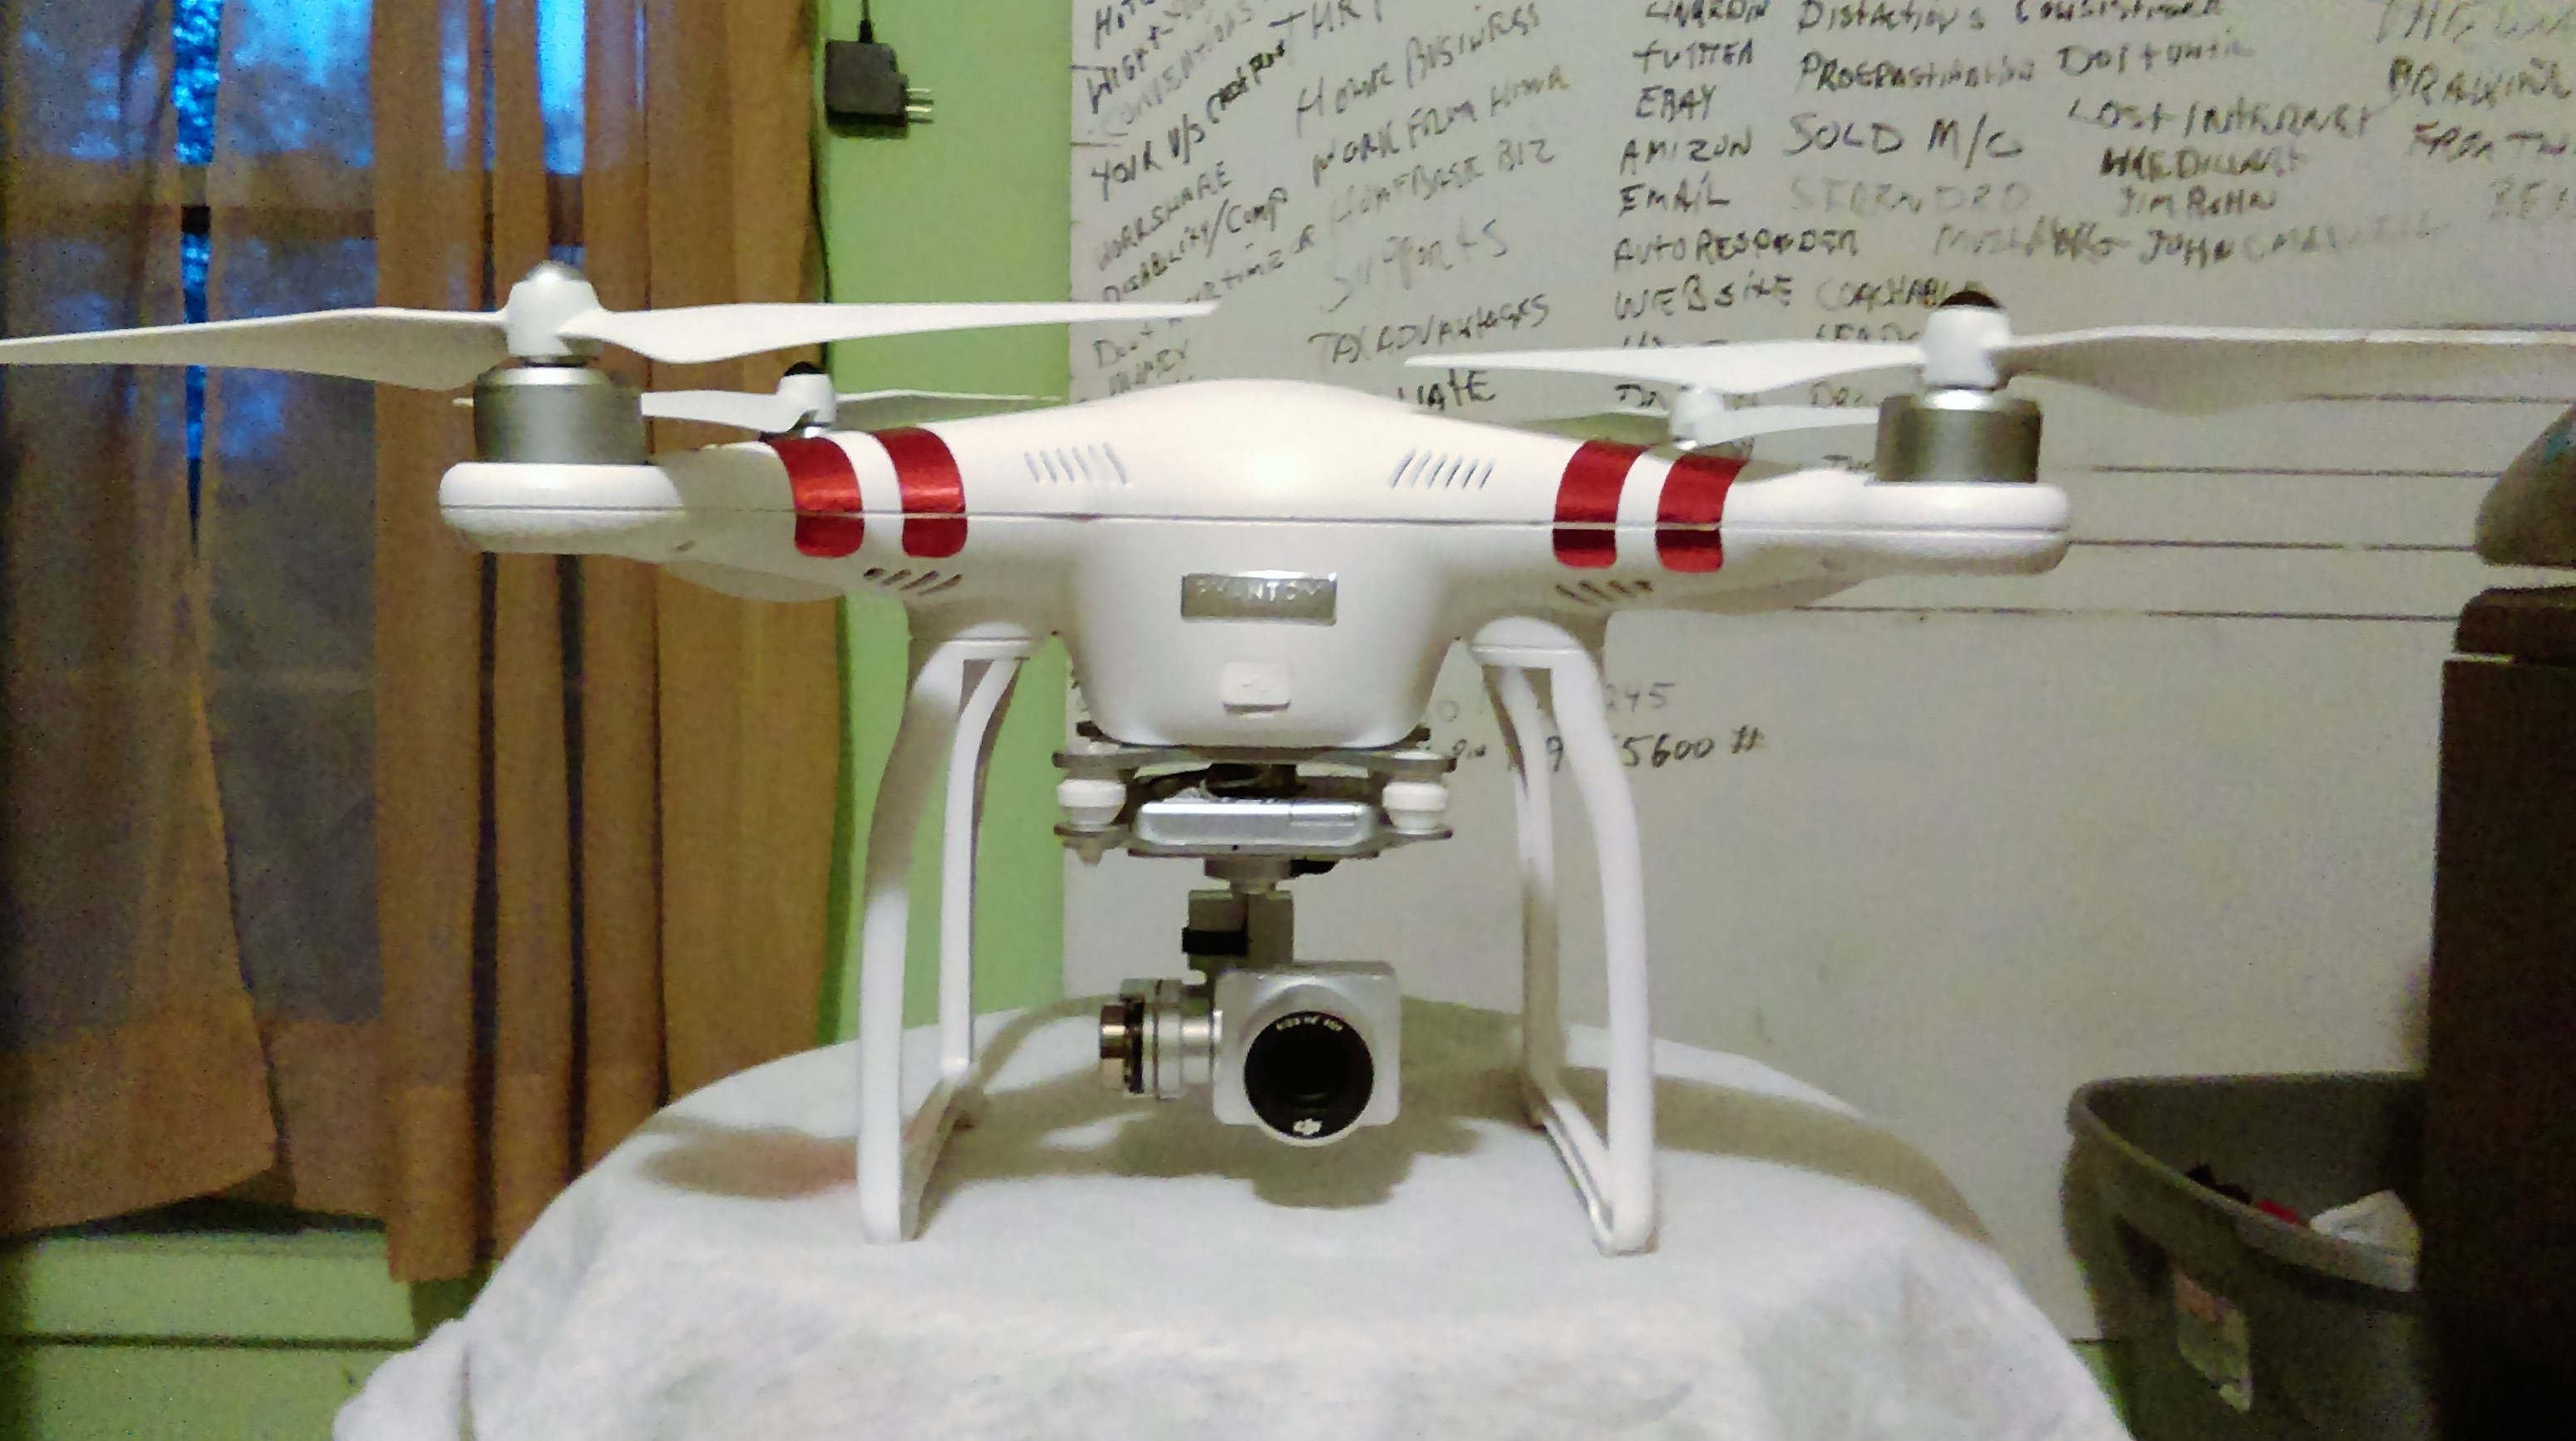 DJI Phantom 3 Post Crash repair of Camera Gimbal